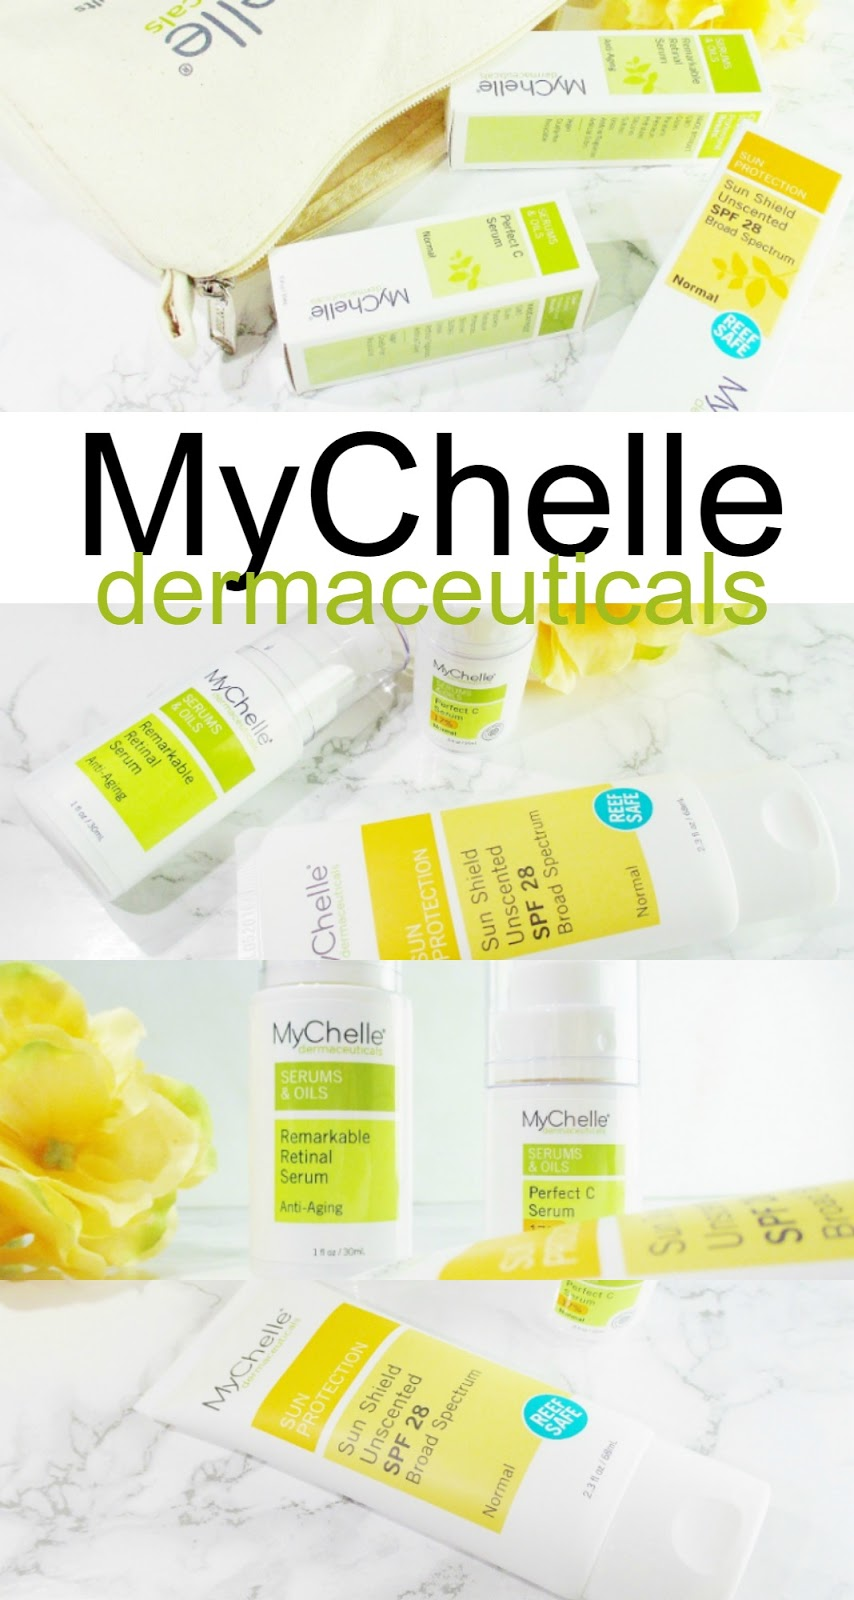 mychelle-dermaceuticals-skin-care-final